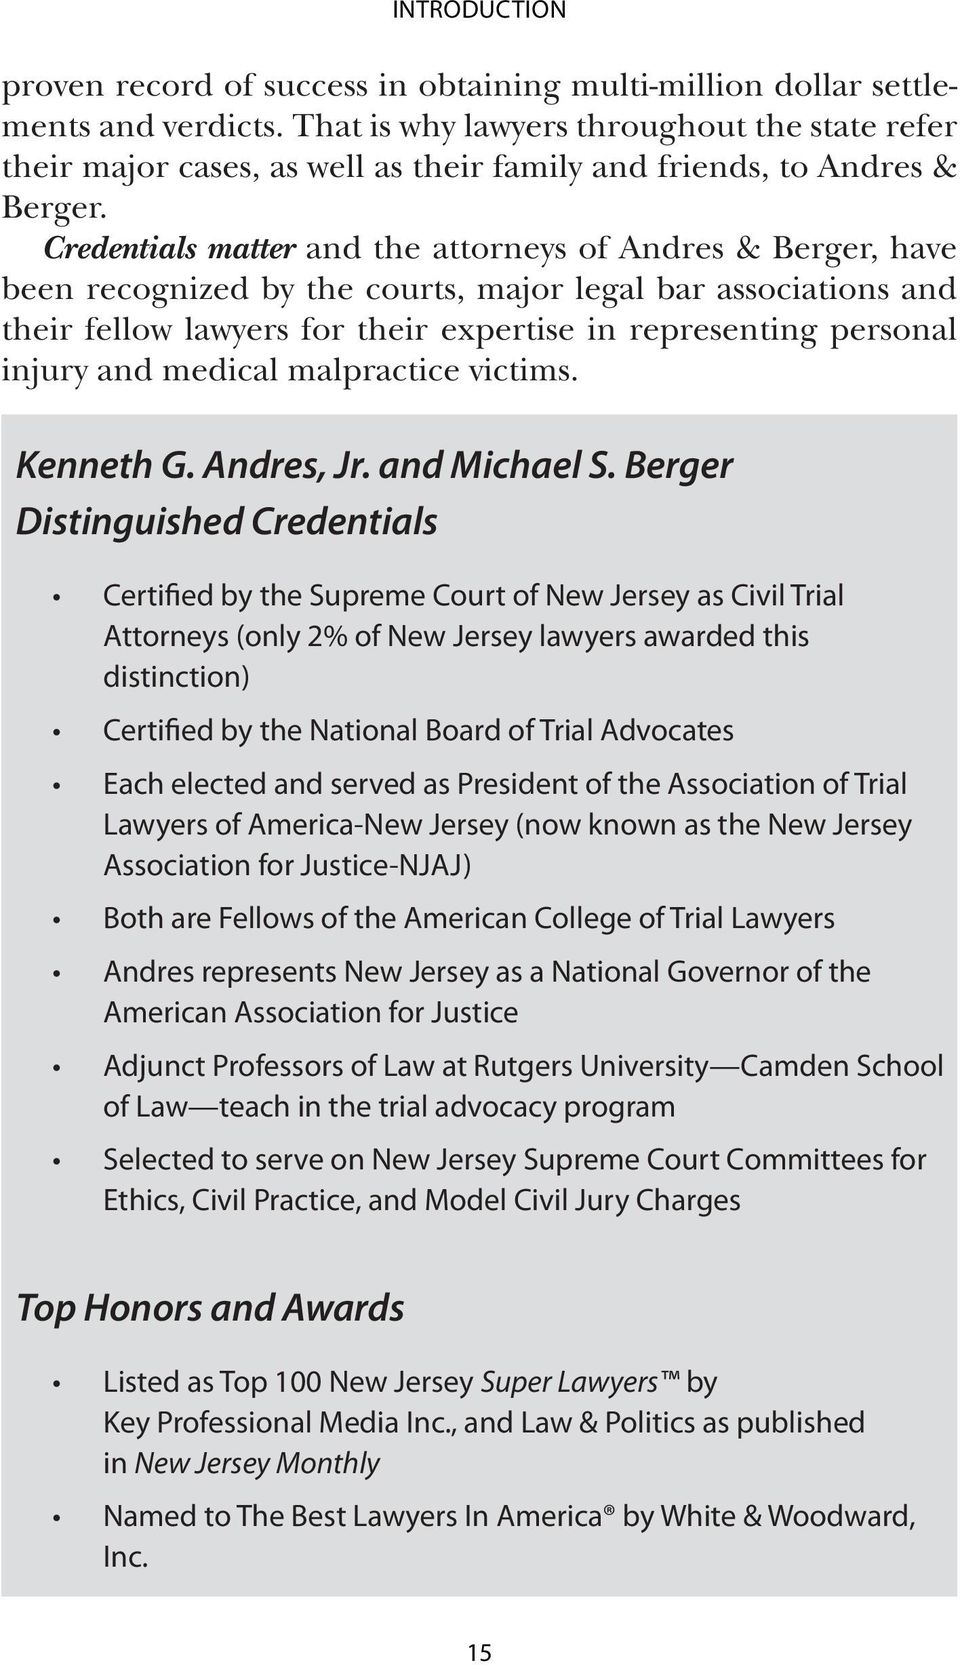 Credentials matter and the attorneys of Andres & Berger, have been recognized by the courts, major legal bar associations and their fellow lawyers for their expertise in representing personal injury